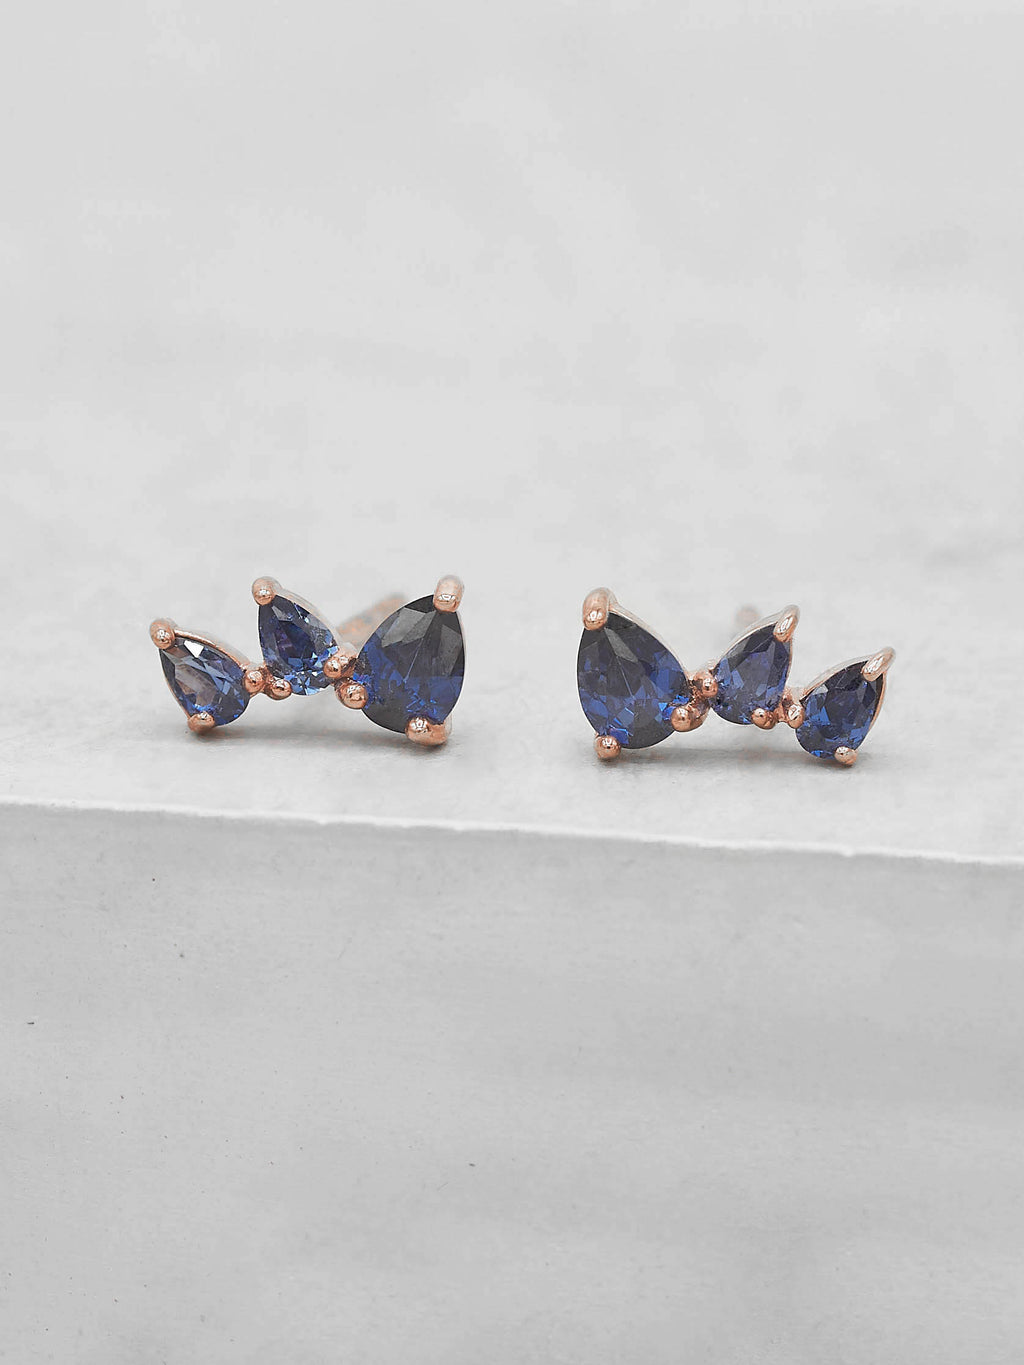 Rose Gold Plated  3 Stones Blue Sapphire Pear Shape Cubic Zirconia CZ Stud Earrings by The Faint Hearted jewelry